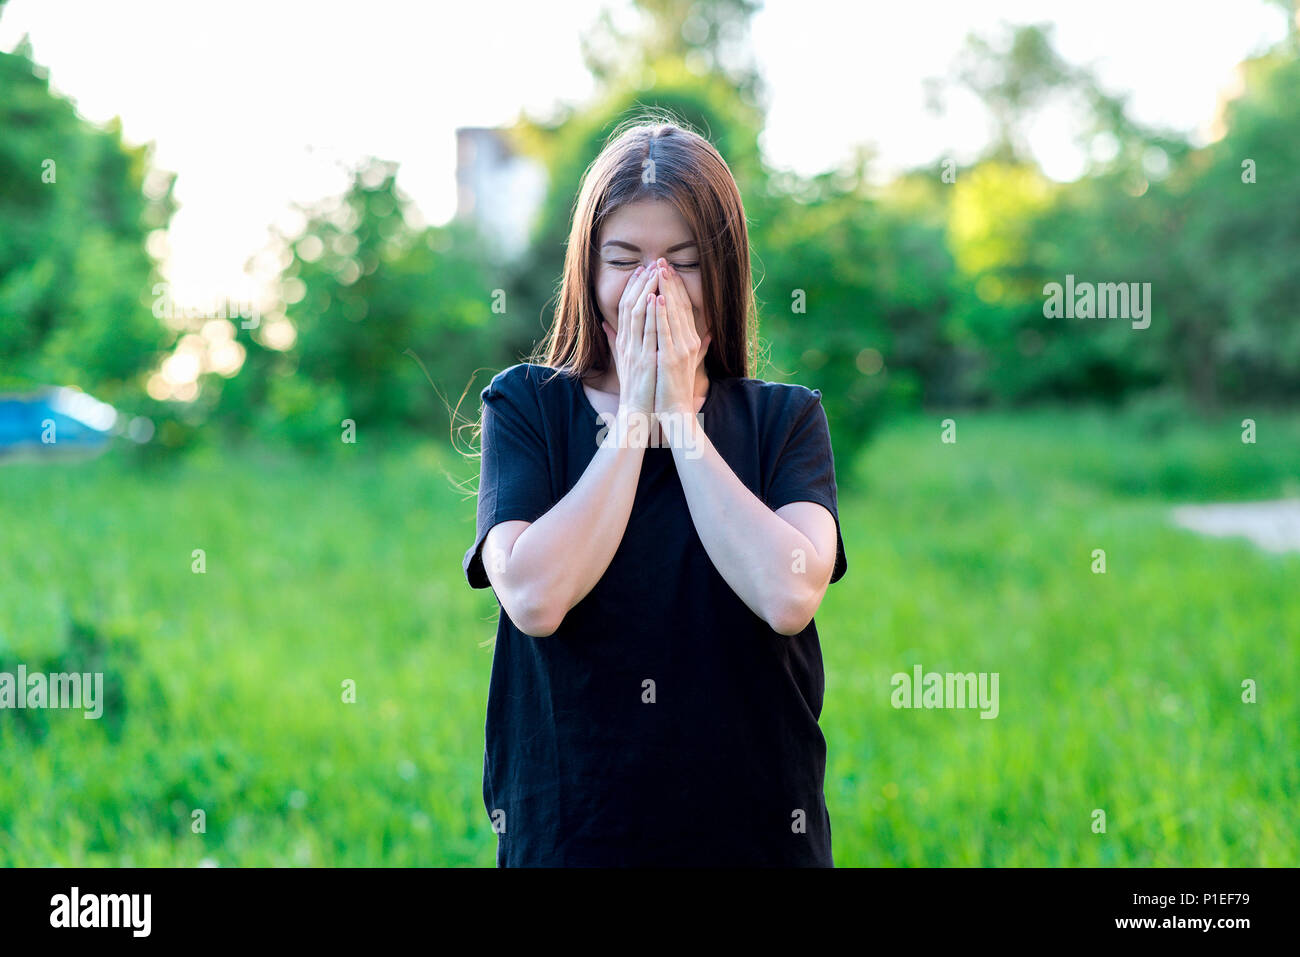 The brunette girl in summer outdoors. In a black T-shirt everyday wear. He covers his mouth with his hands. Happy laughing laughs with her hands over her mouth. Emotions of happiness and pleasure. - Stock Image